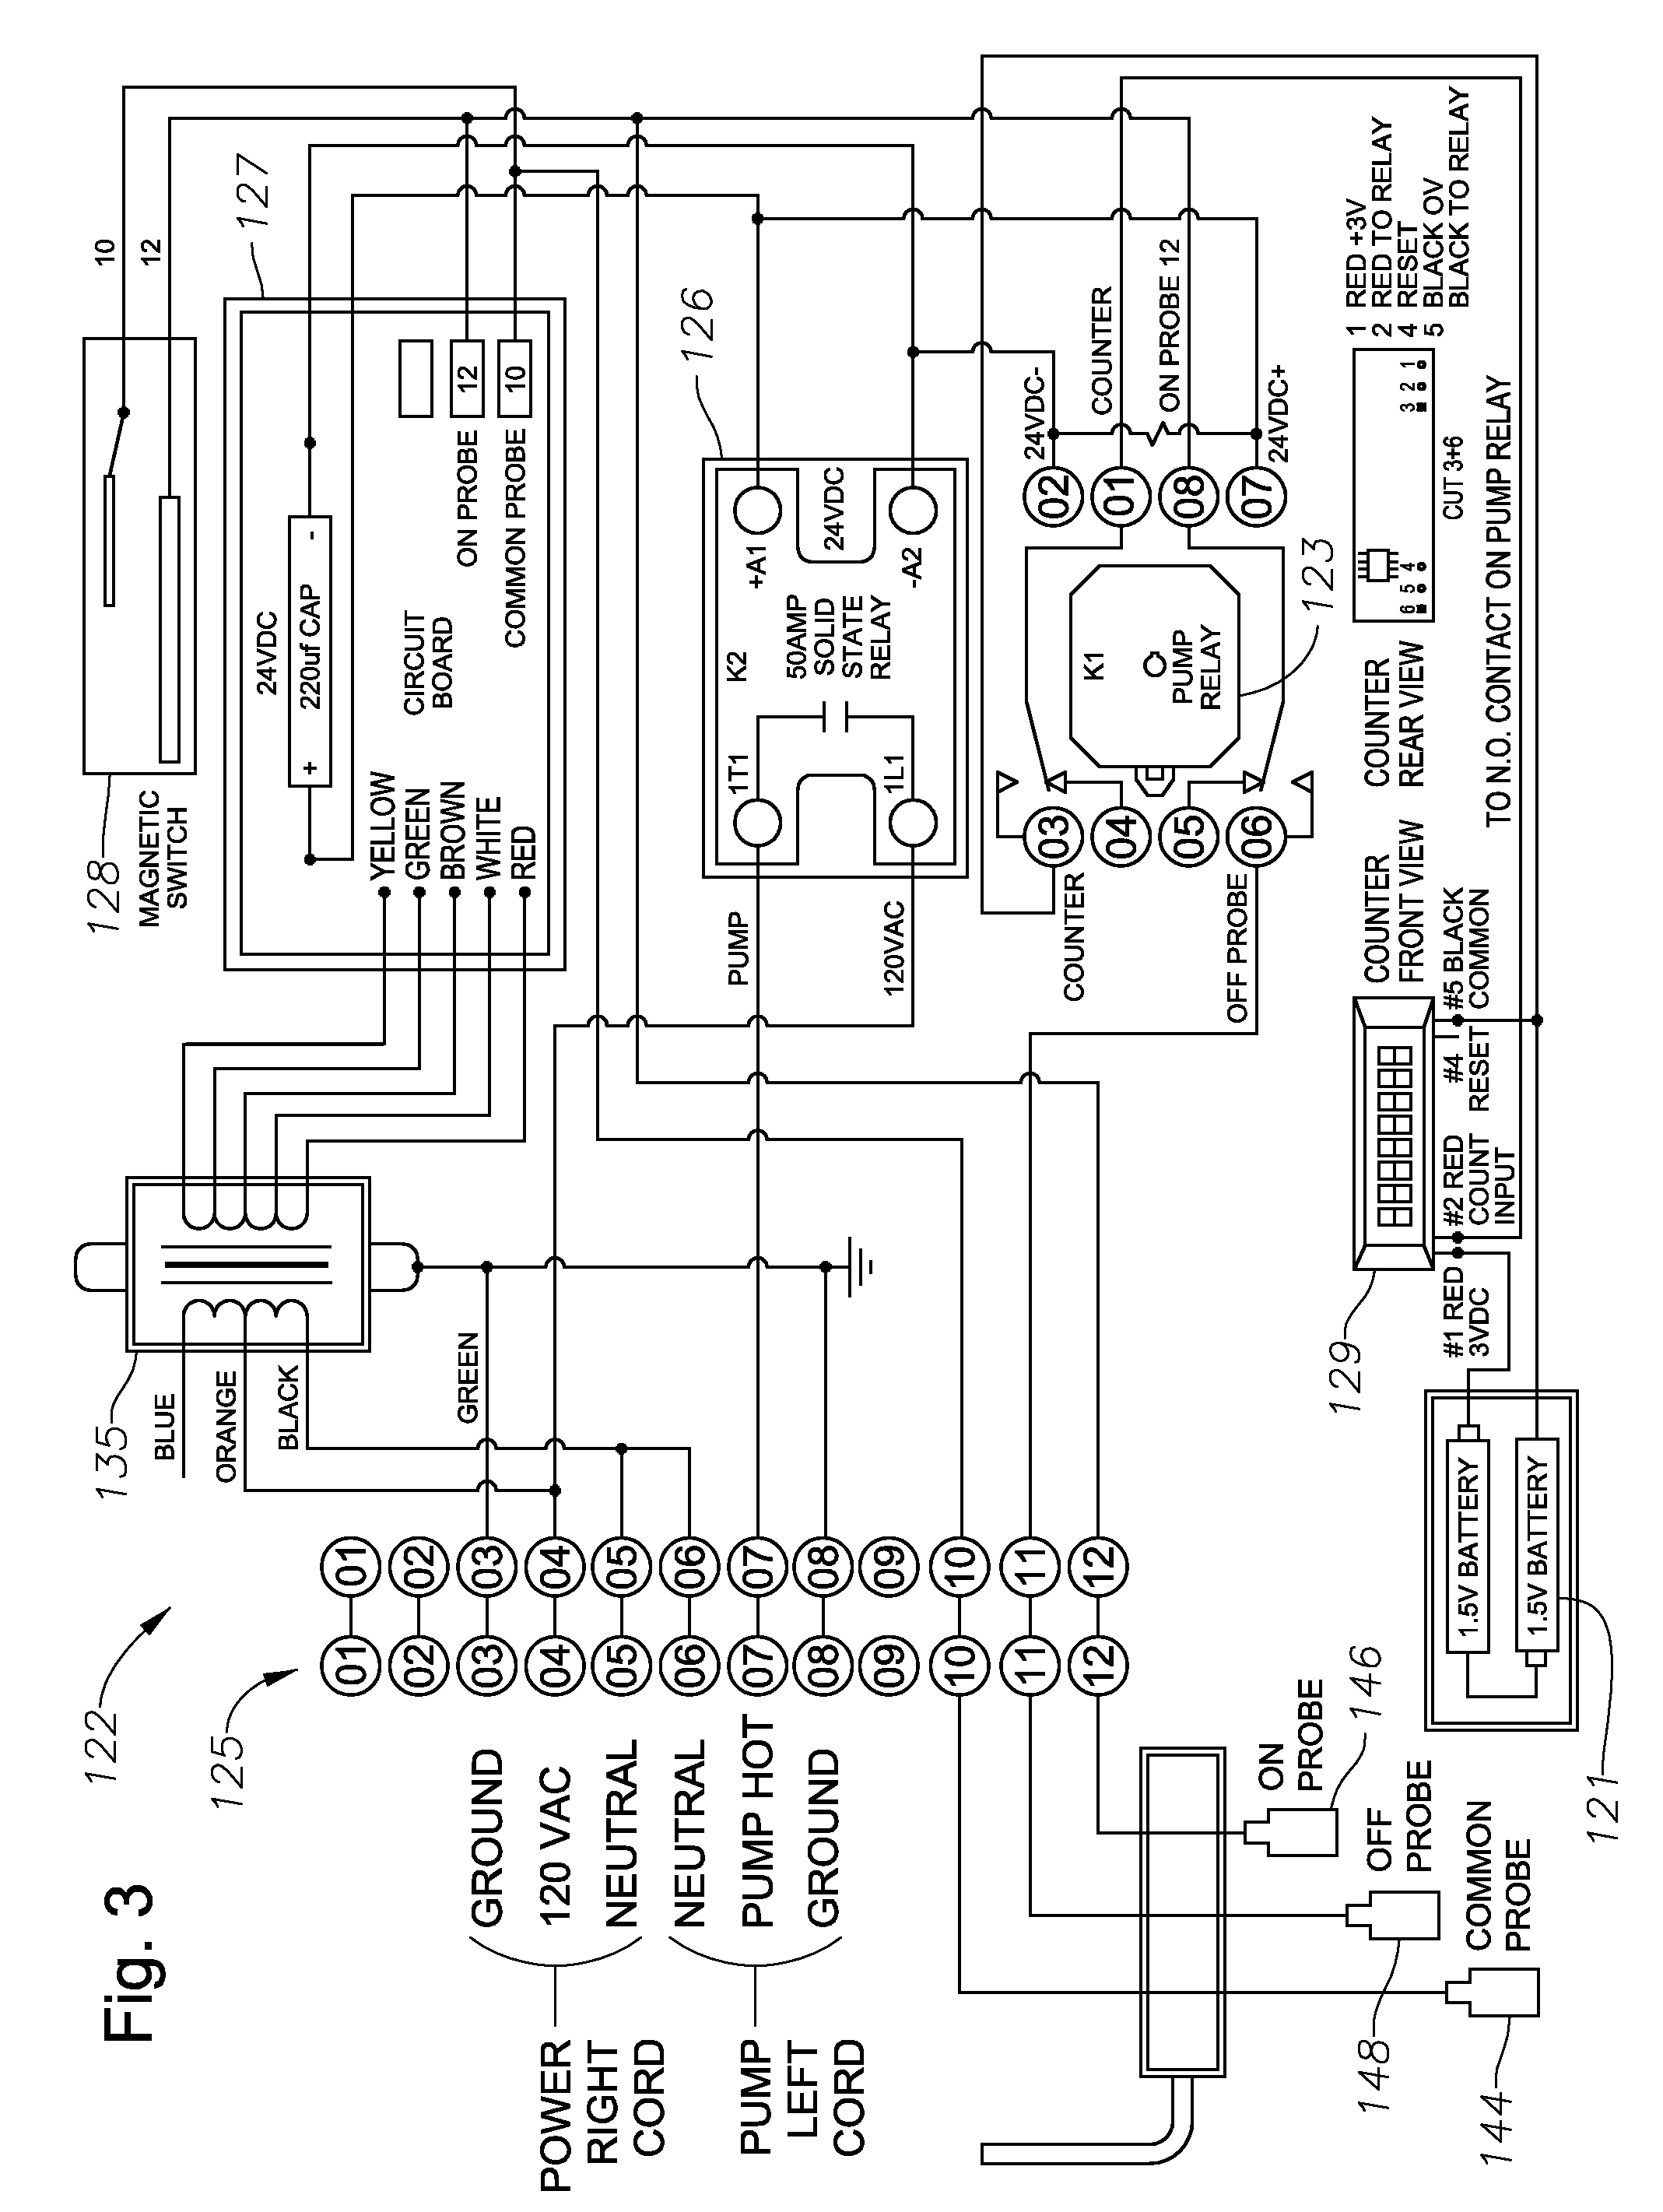 patent us8047805 - solid state sump pump control